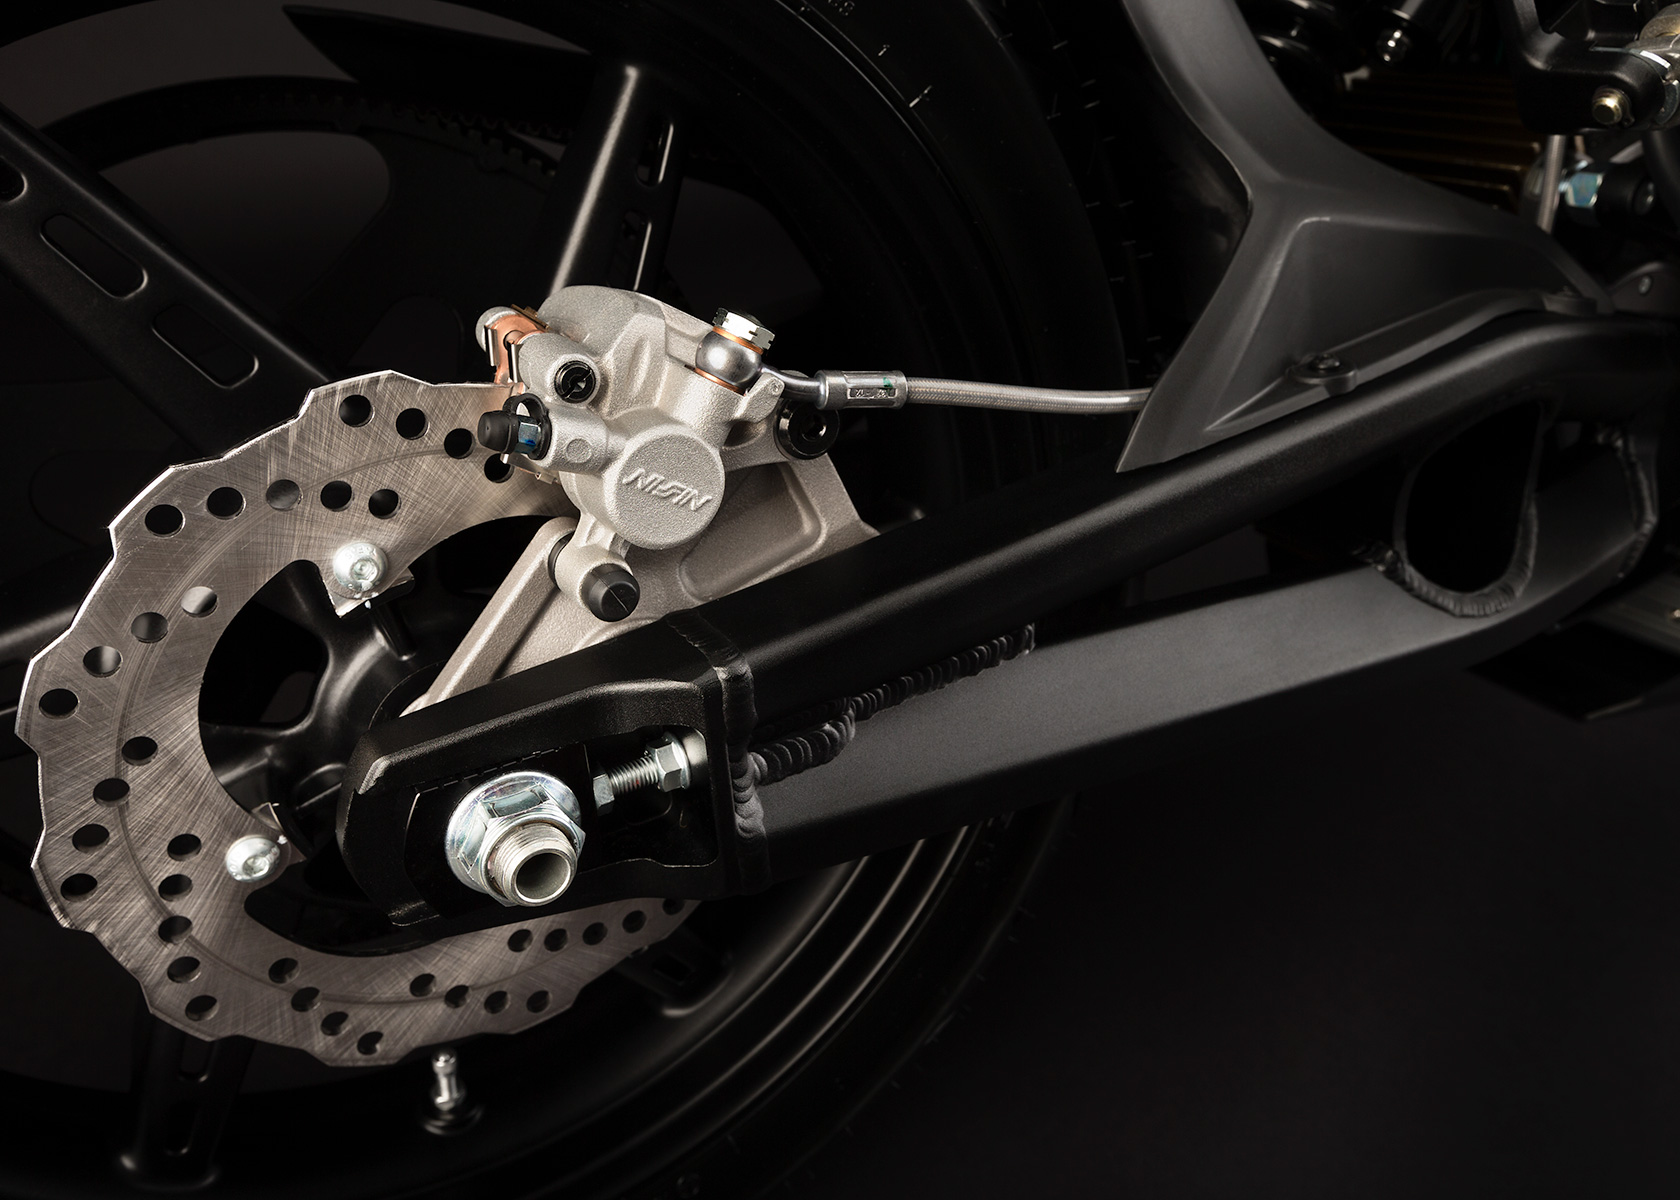 2013 Zero S Electric Motorcycle: Rear Brake